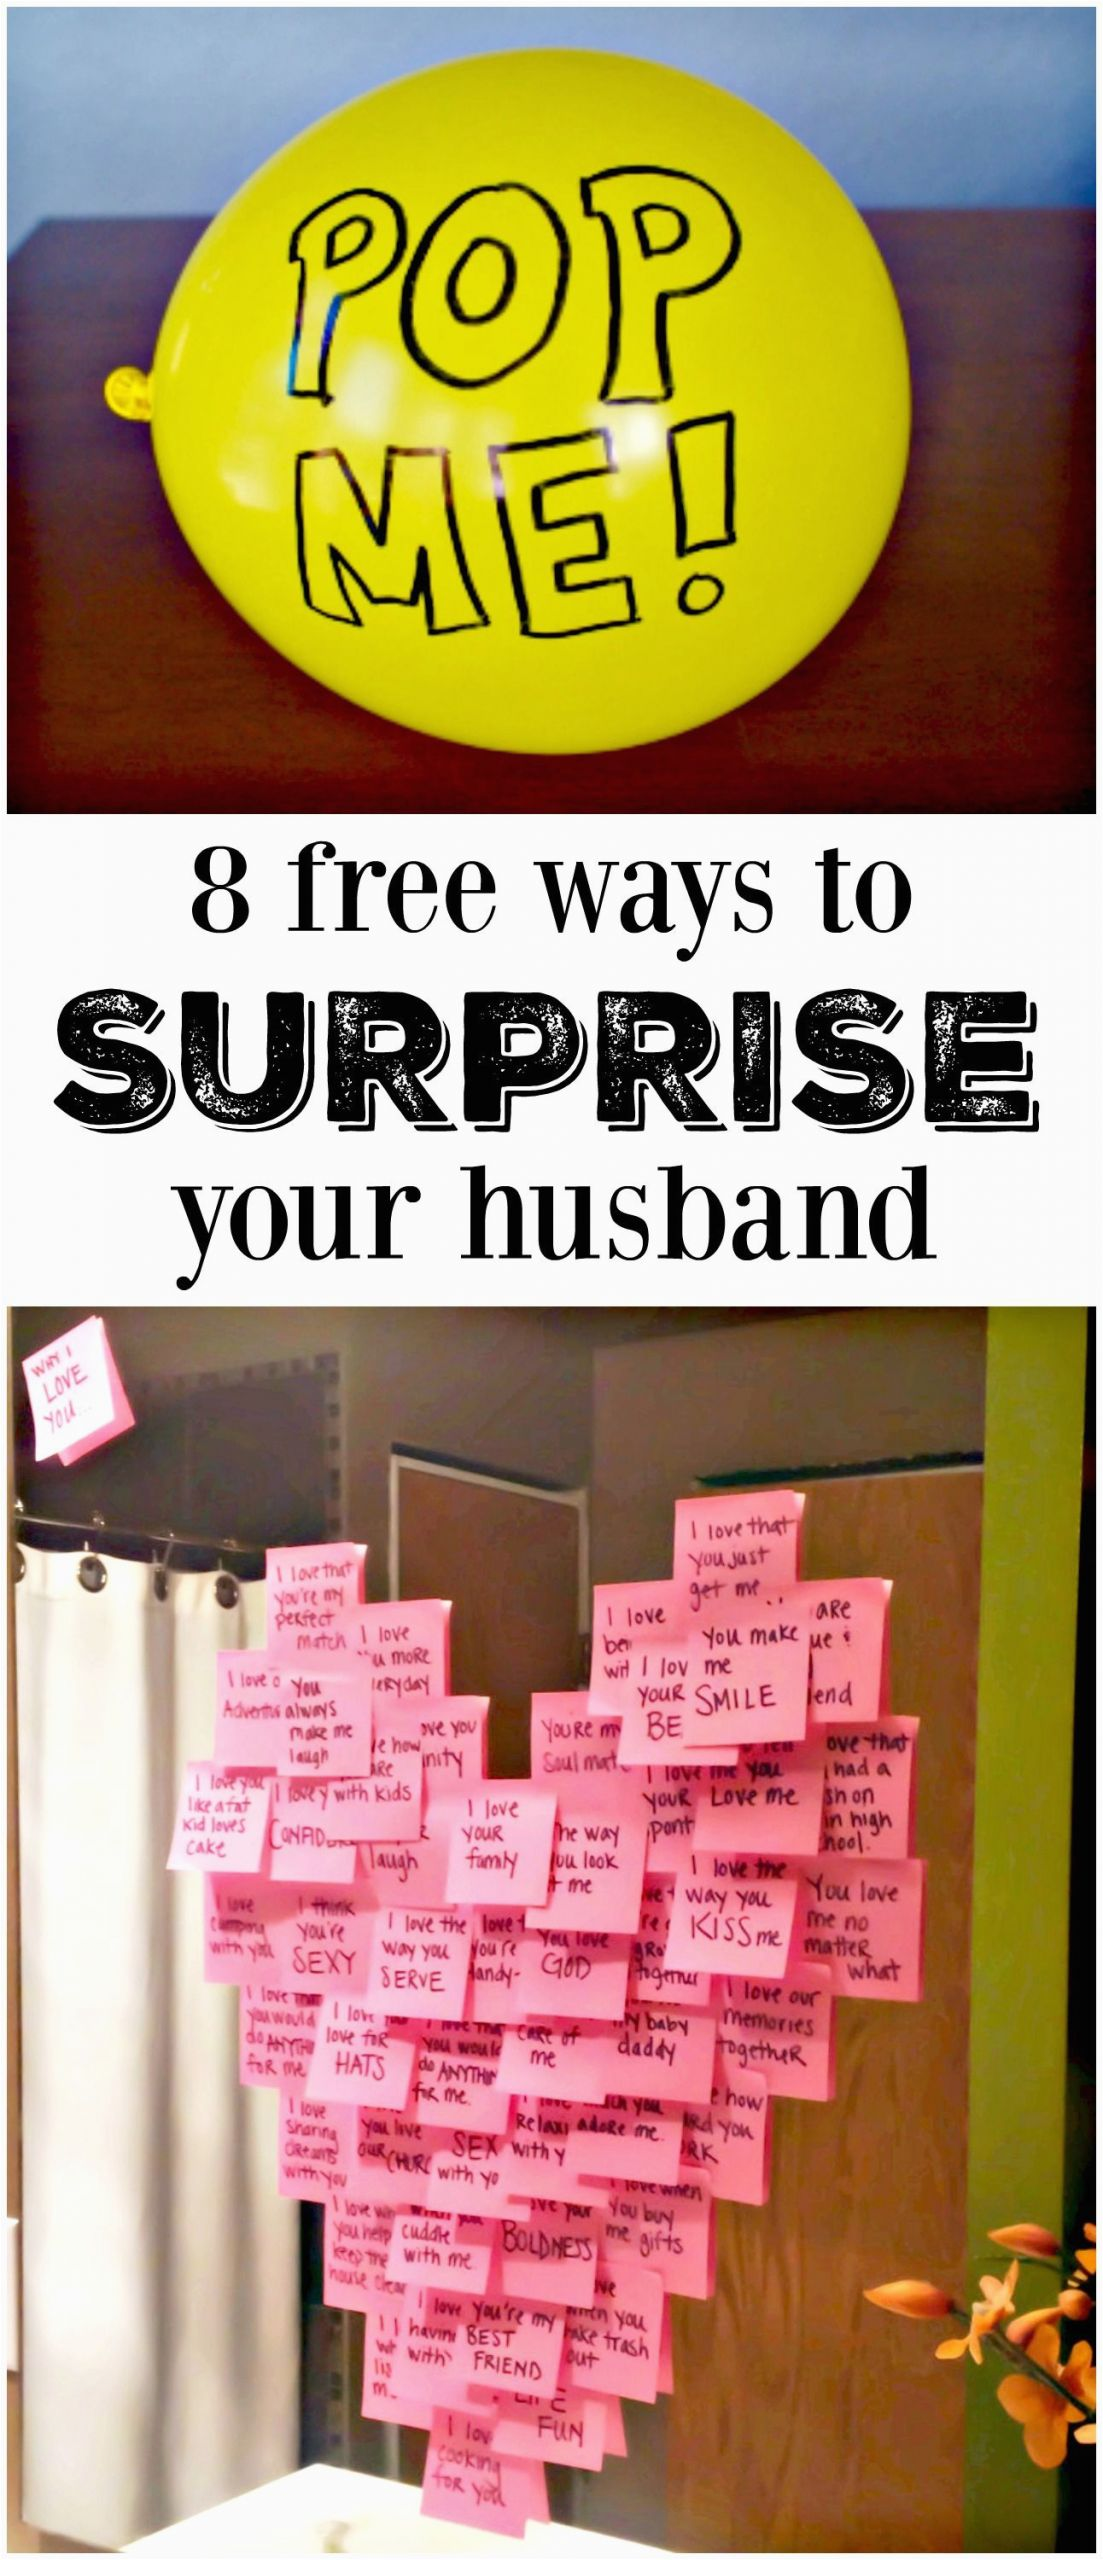 Birthday Gift Ideas for Husband In Dubai 8 Meaningful Ways to Make His Day Diy Ideas Valentines